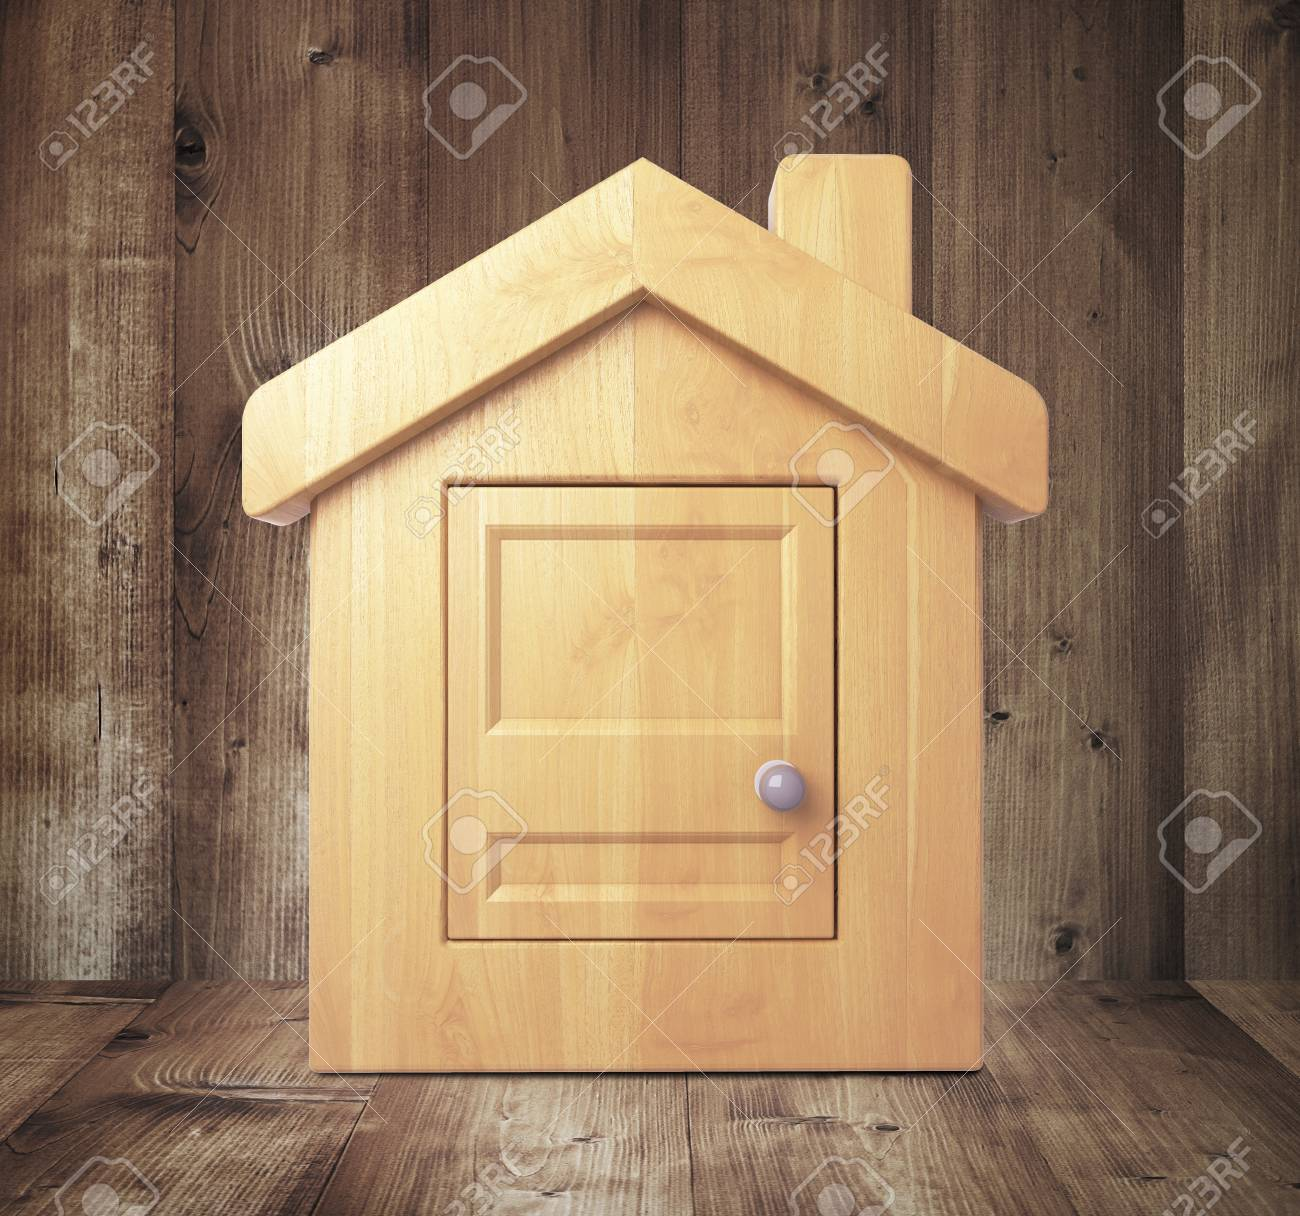 wooden house in wooden room Stock Photo - 23371431